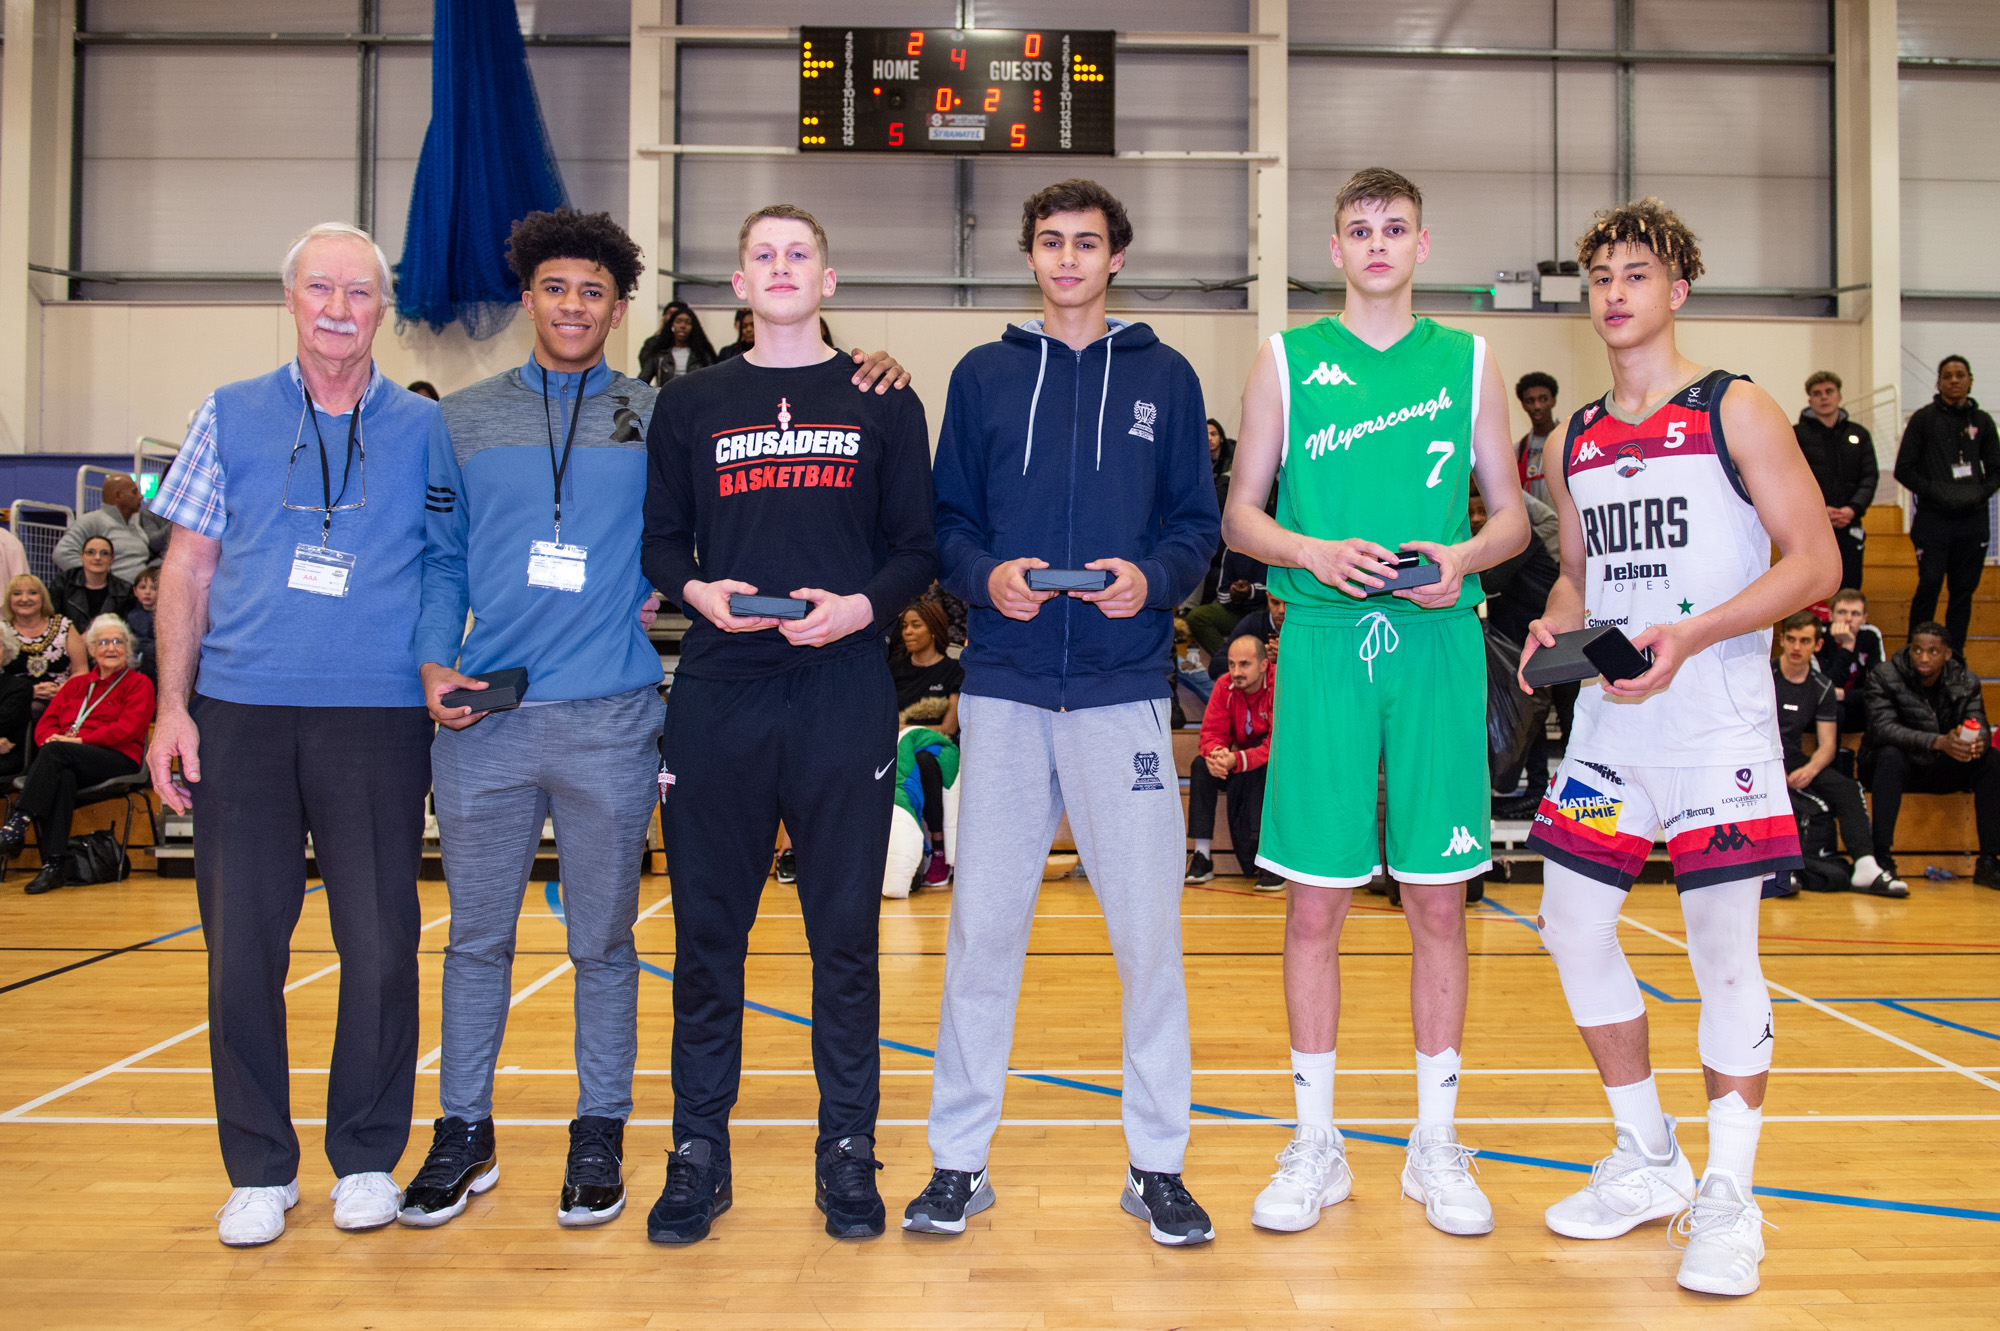 Haris tournament 2018 All-Star 5: Chester Morrell Kent Crusaders, Michael Gray Blue Ridge School, Miguel Barros CD Póvoa, Mate Okros Myerscough College, Blaize Sagna Charnwood College Riders